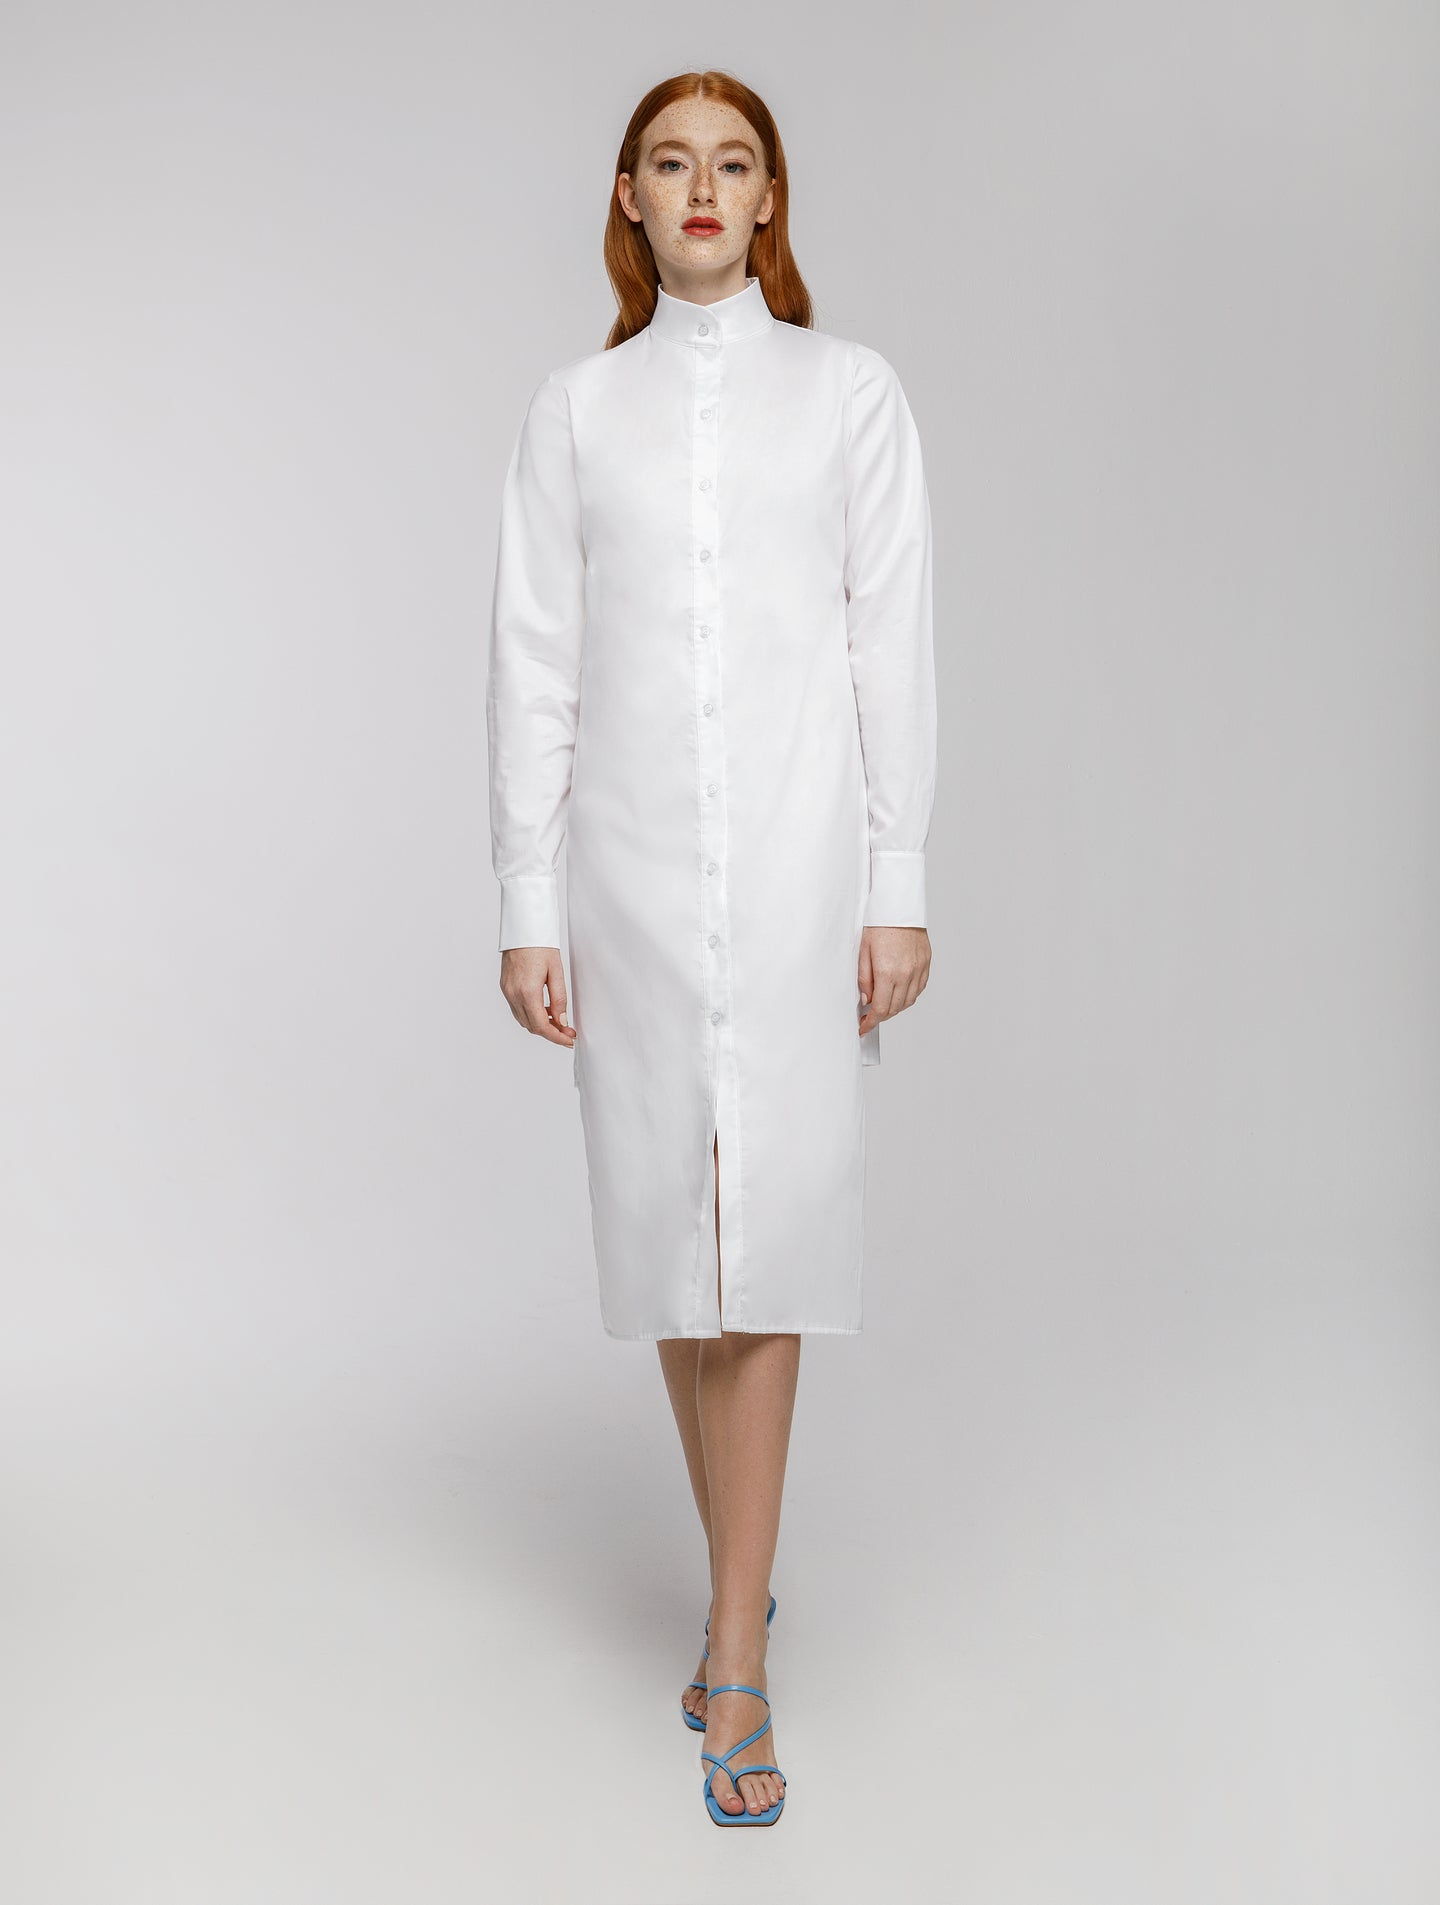 Asymmetric shirt dress with Mao collar in White and Black